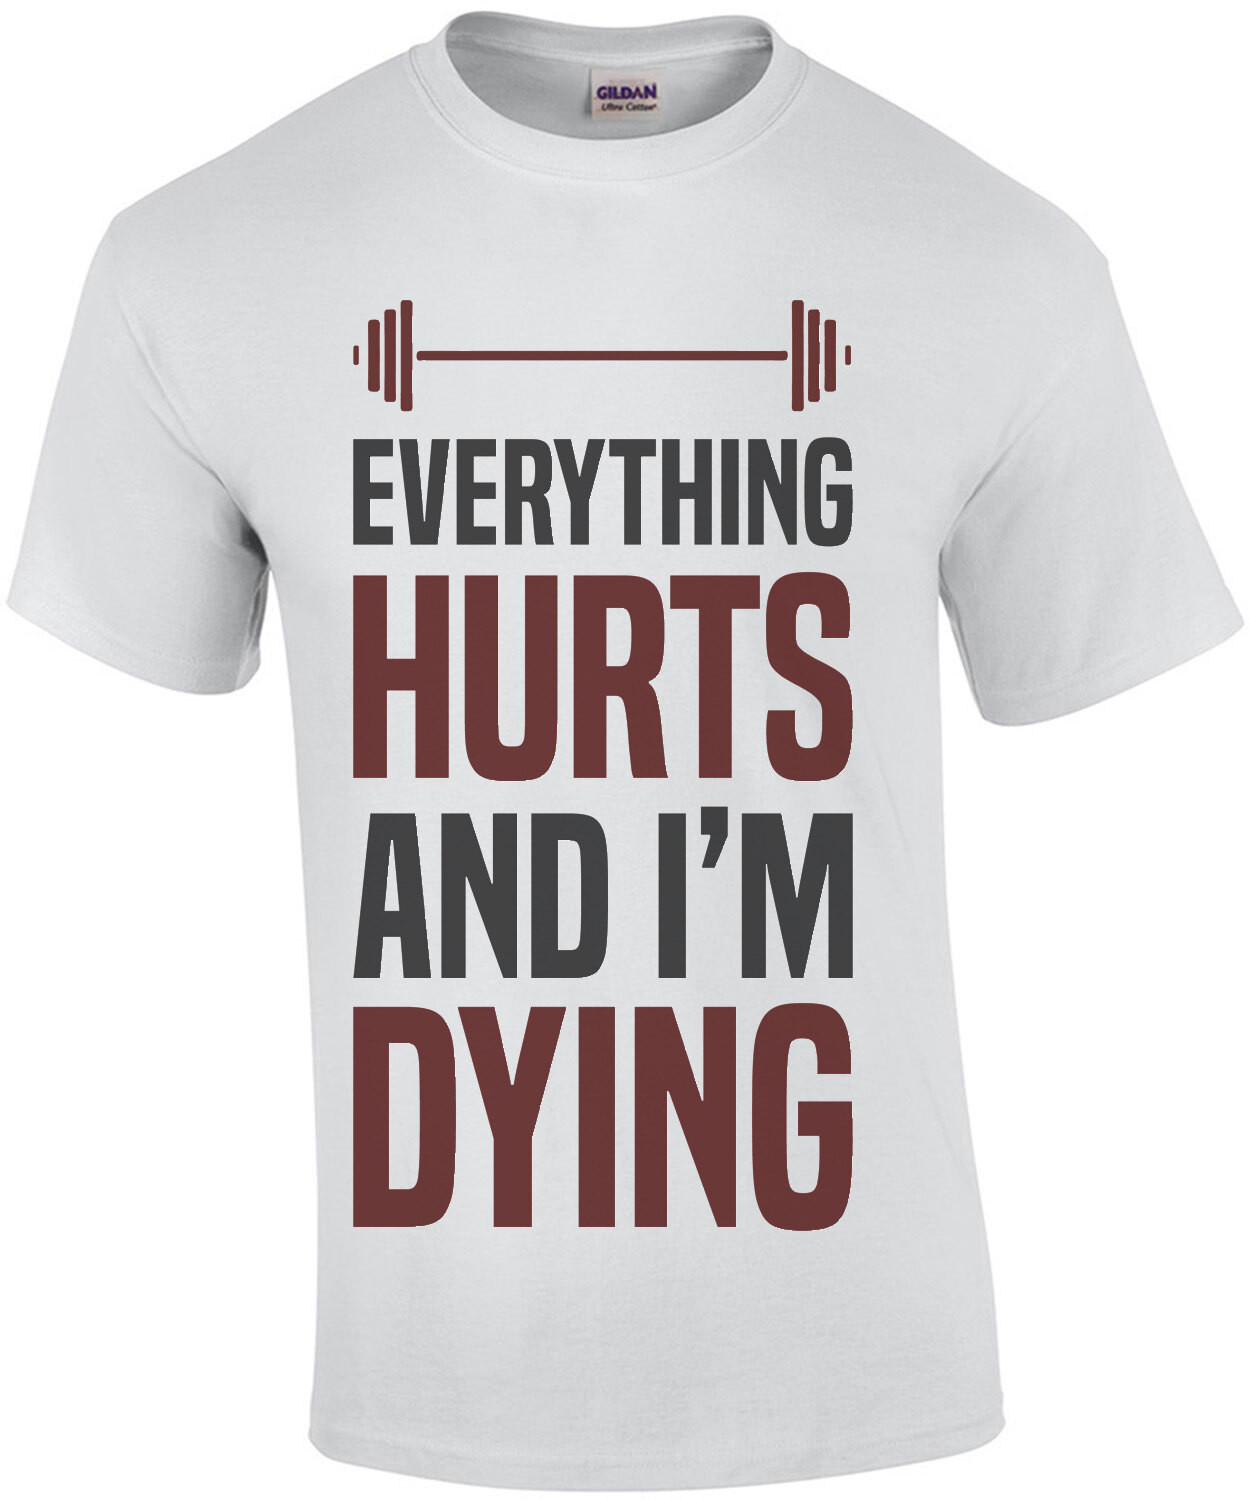 Everything hurts and I'm dying - funny work out t-shirt